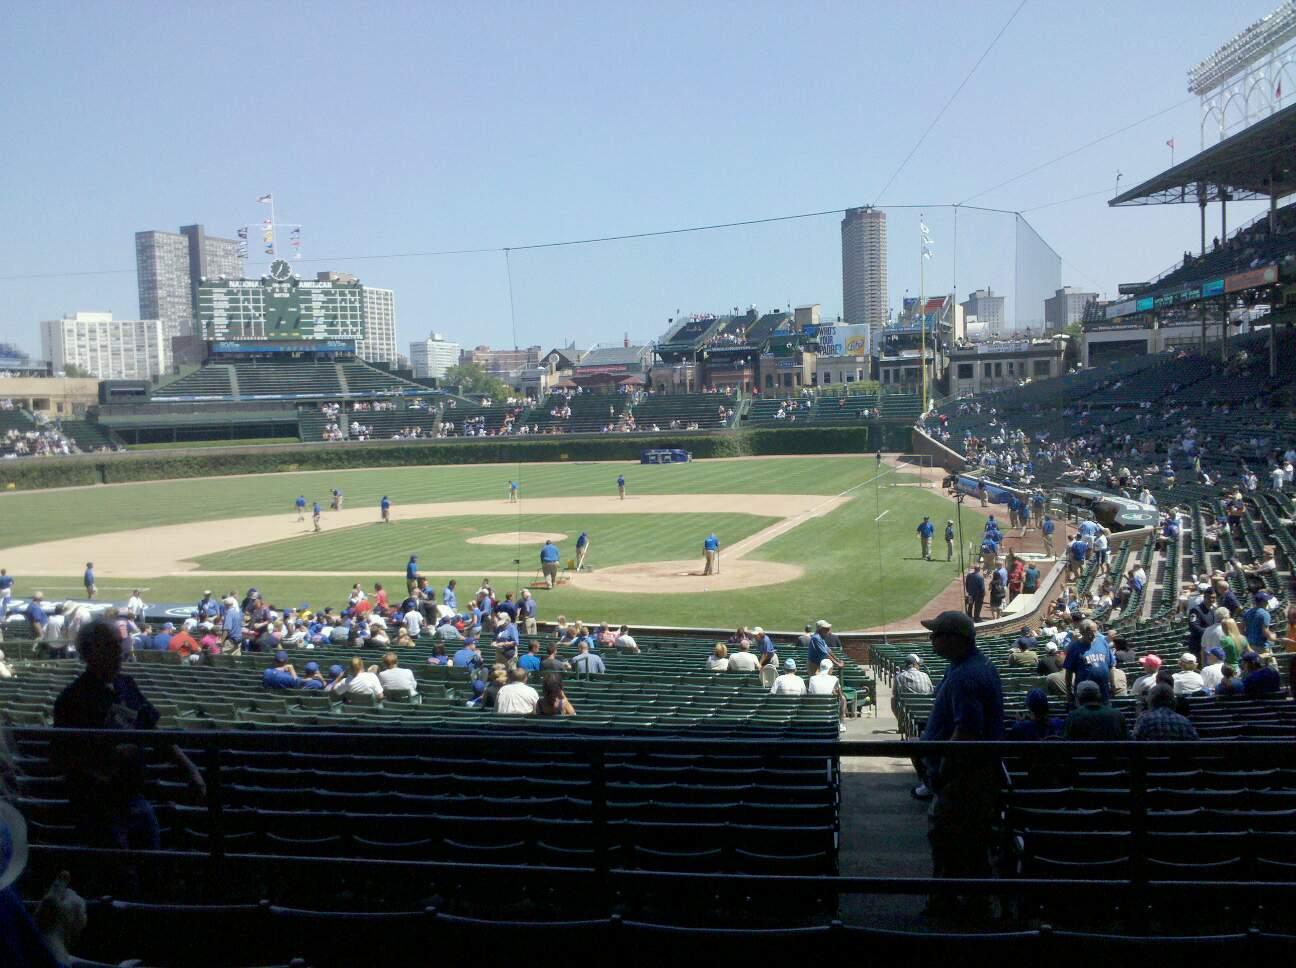 Wrigley Field Section 218 Row 5 Seat 10